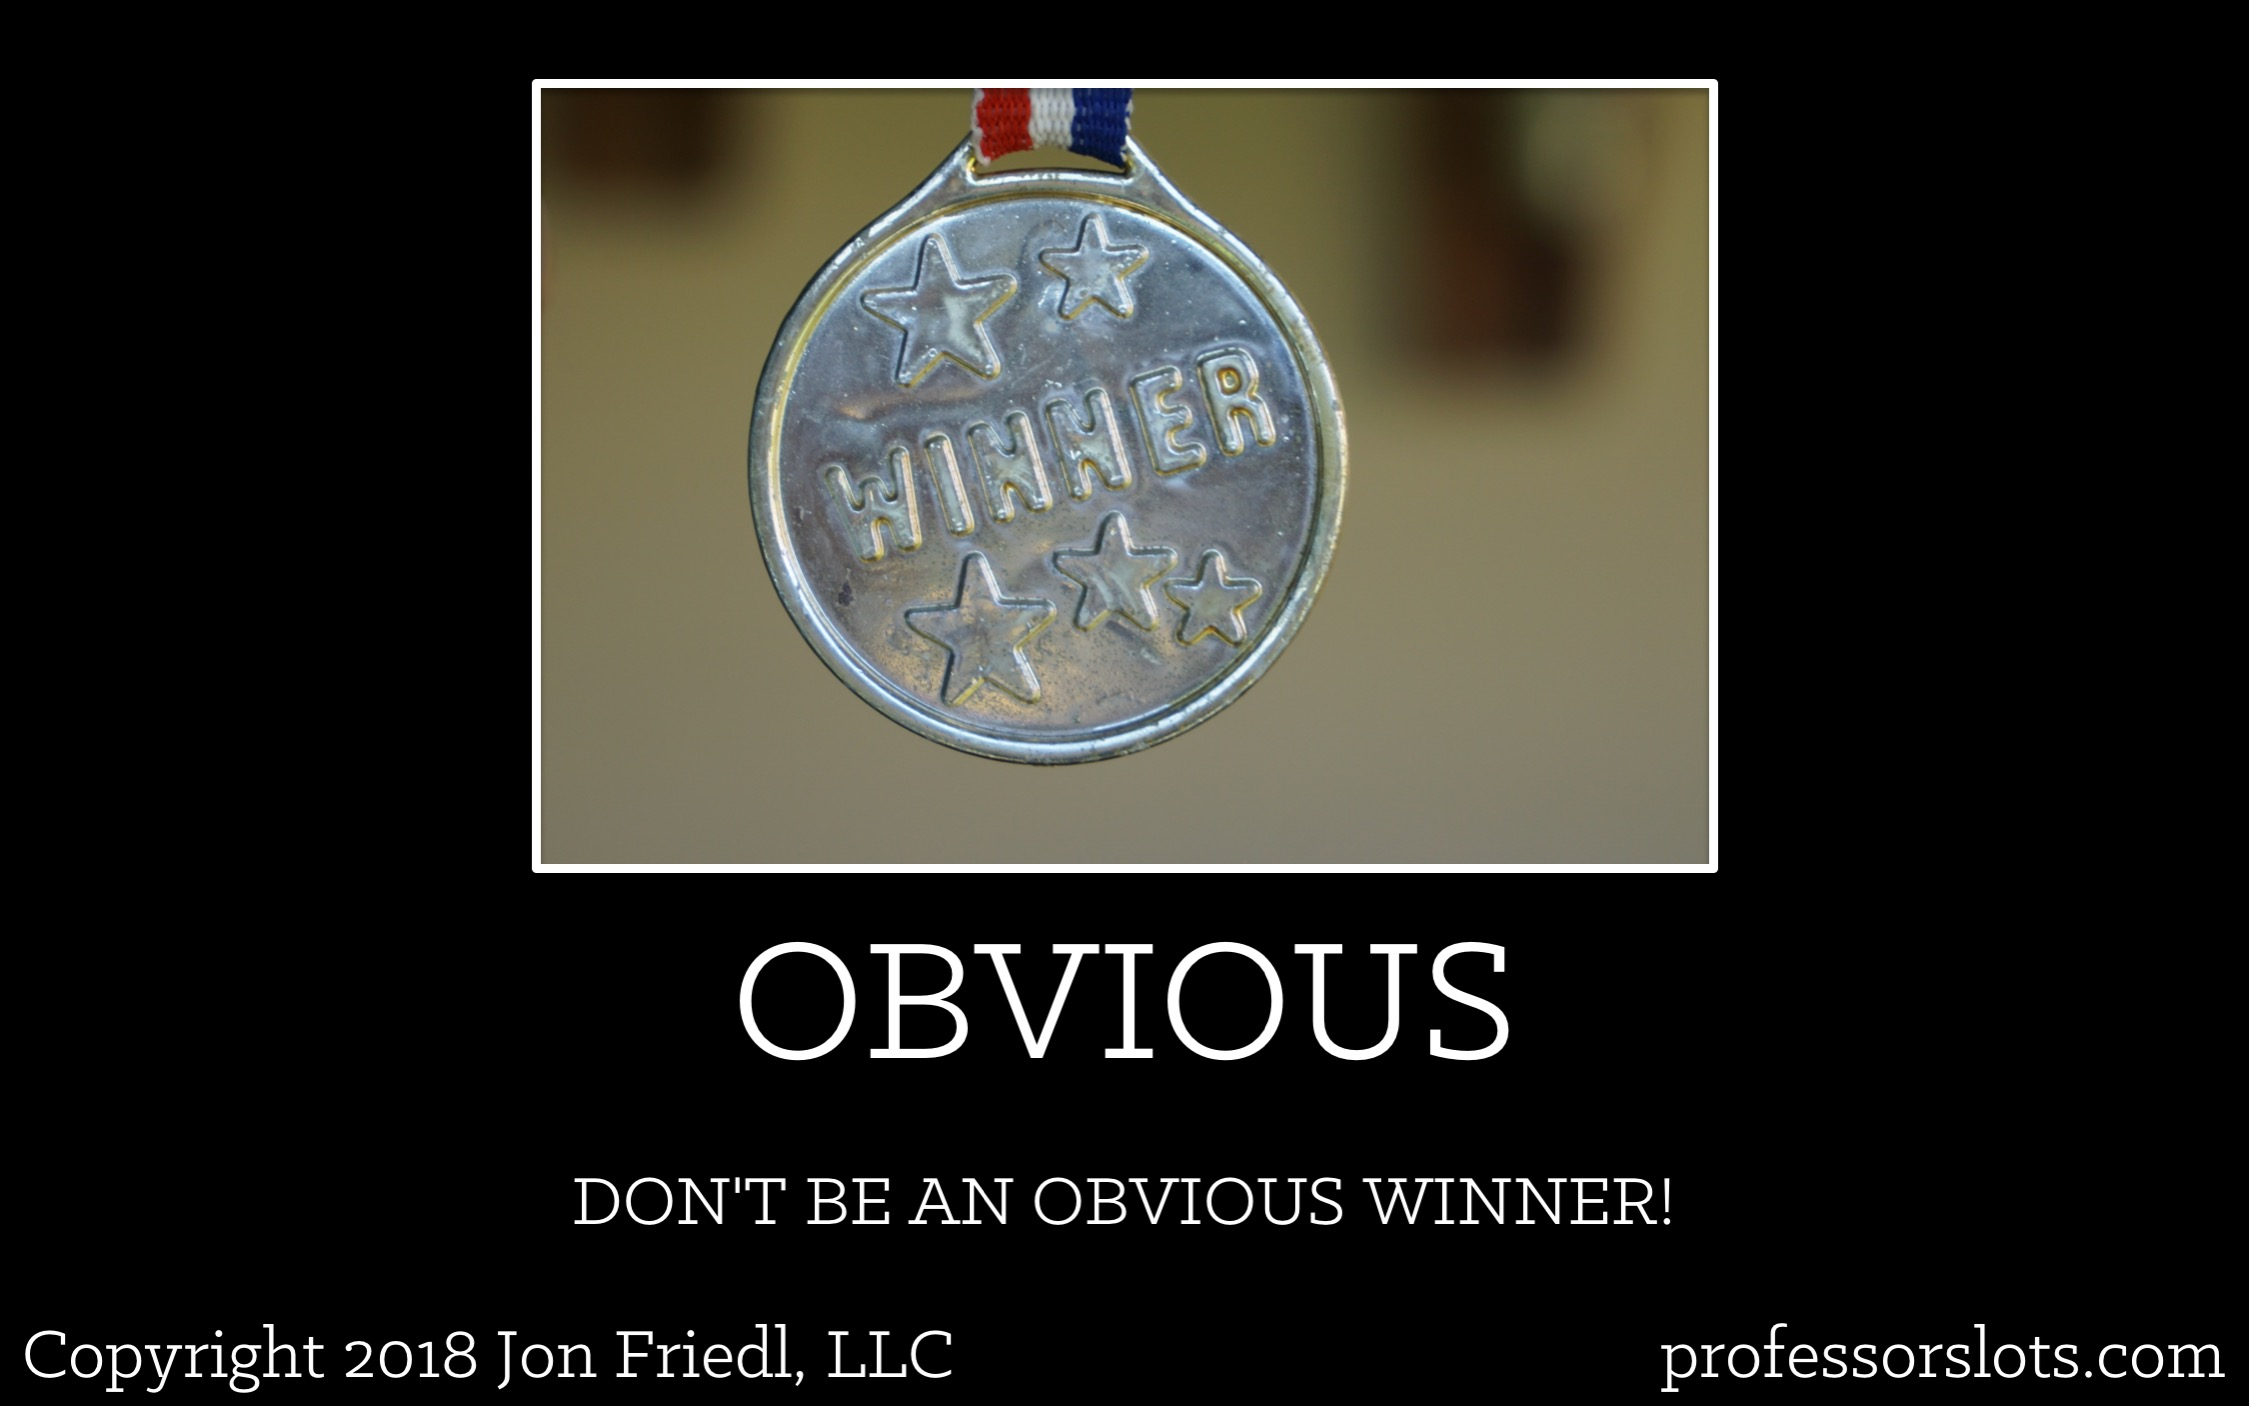 How I Won A Car: Don't be an obvious winner!